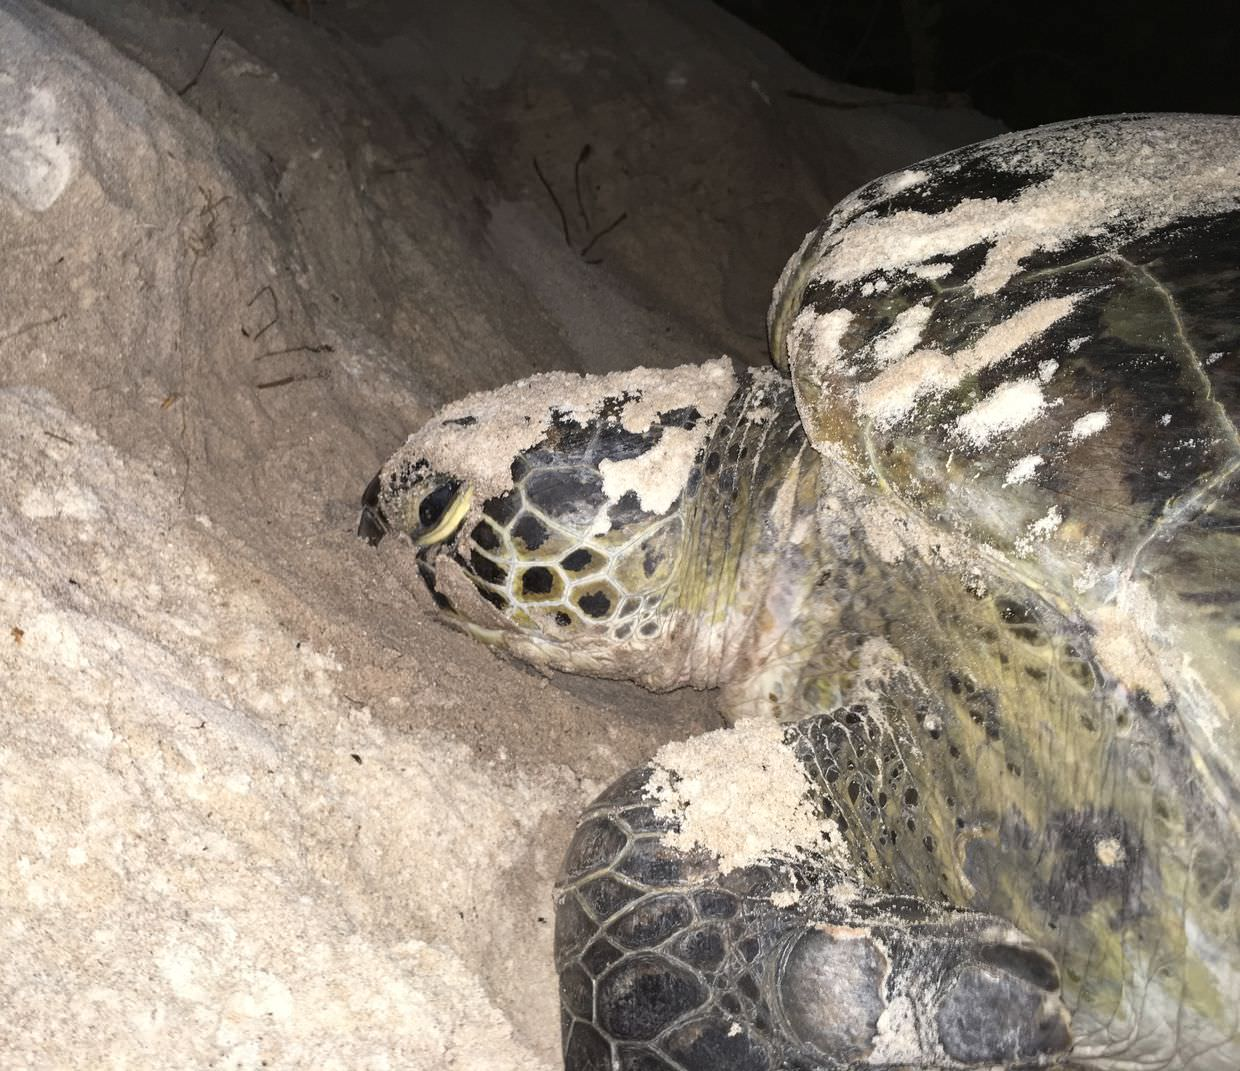 Turtle 3's face, used for identification